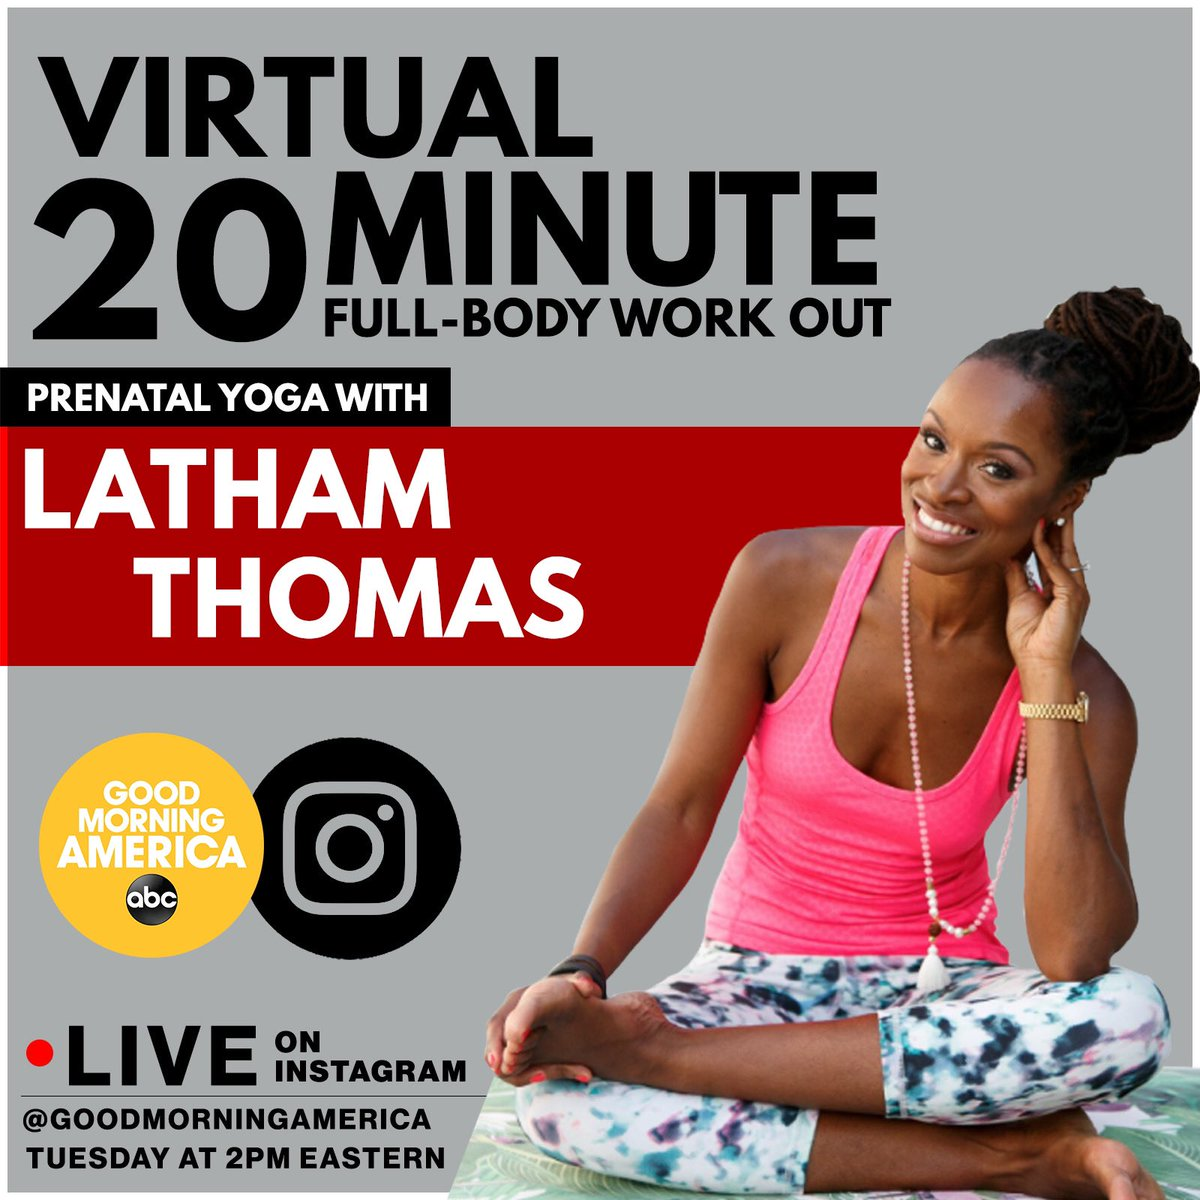 Let's yoga! Take a break tomorrow and join us at 2pm eastern live on @GMA Instagram 🧘🏾‍♀️